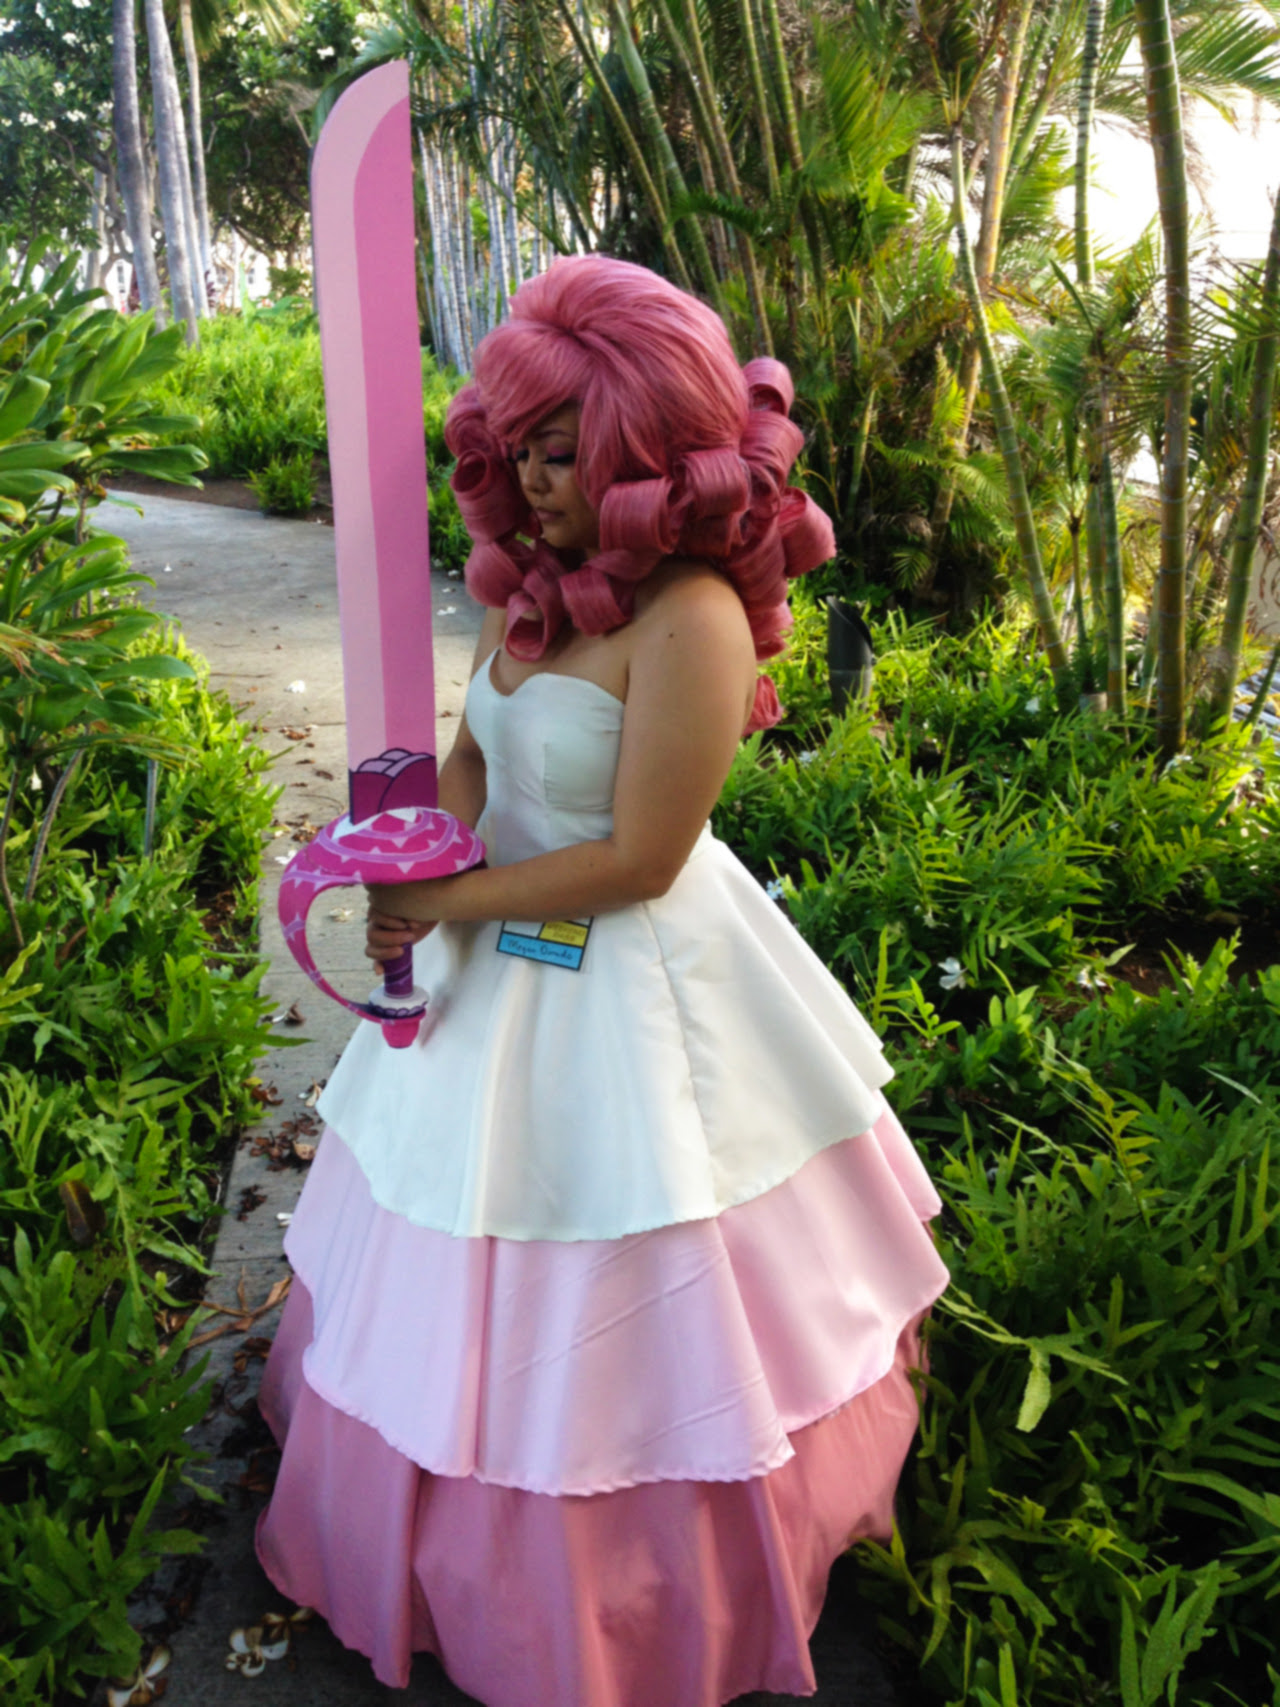 Mizimel as Rose Quartz from Steven Universe